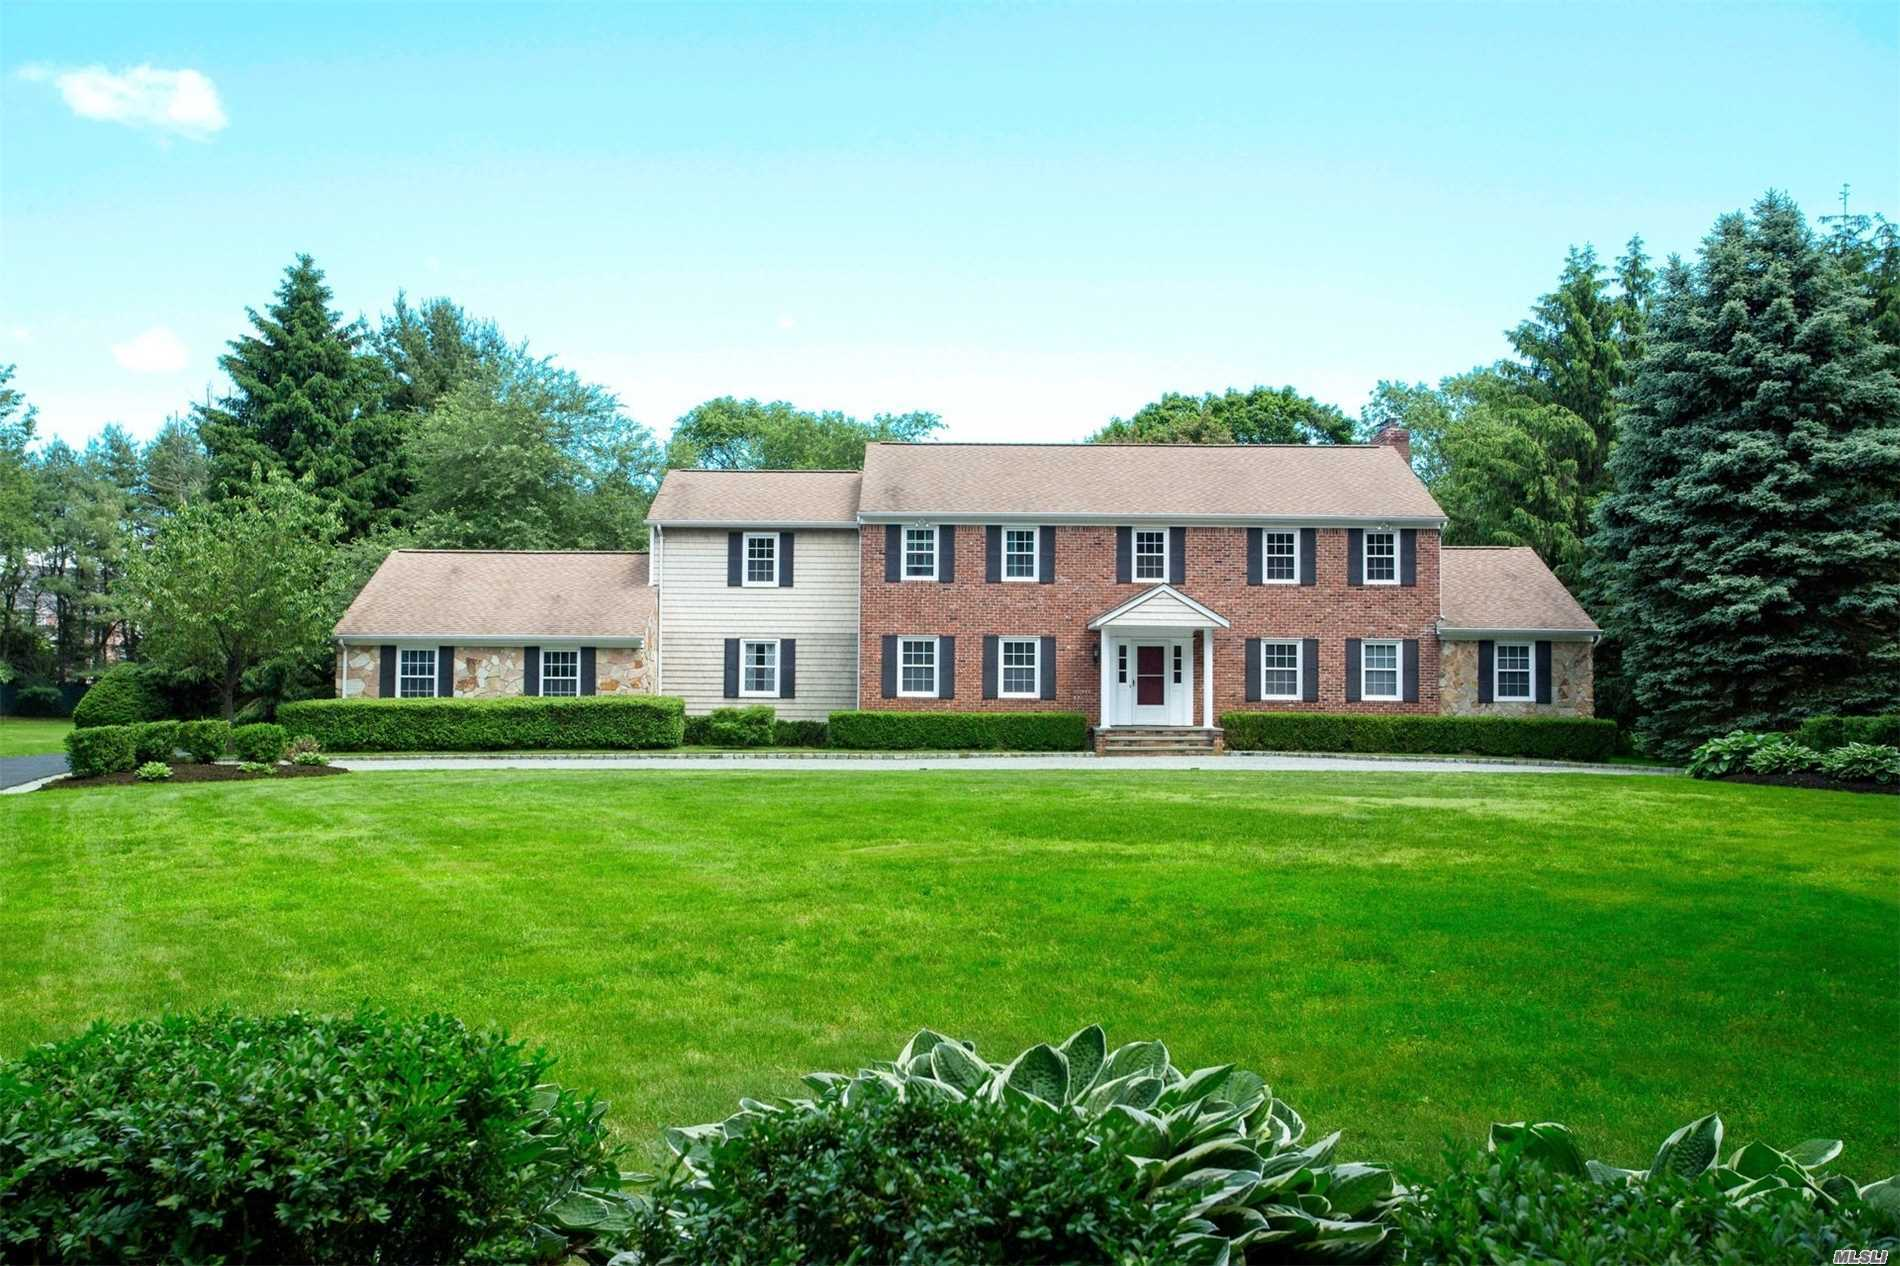 Price Adjustment! Breathtaking Views Of Gently Swaying Lawns Embrace This Gracious Center Hall Colonial That Is Classically Styled, With Delectable Country Accents, Updated Kitchen And Baths, And Sun Drenched And Gracious Rooms Throughout.Located Perfectly, It Is Minutes From Schools, Colleges, World Class Shopping, Golf, Beaches And Major Highways.